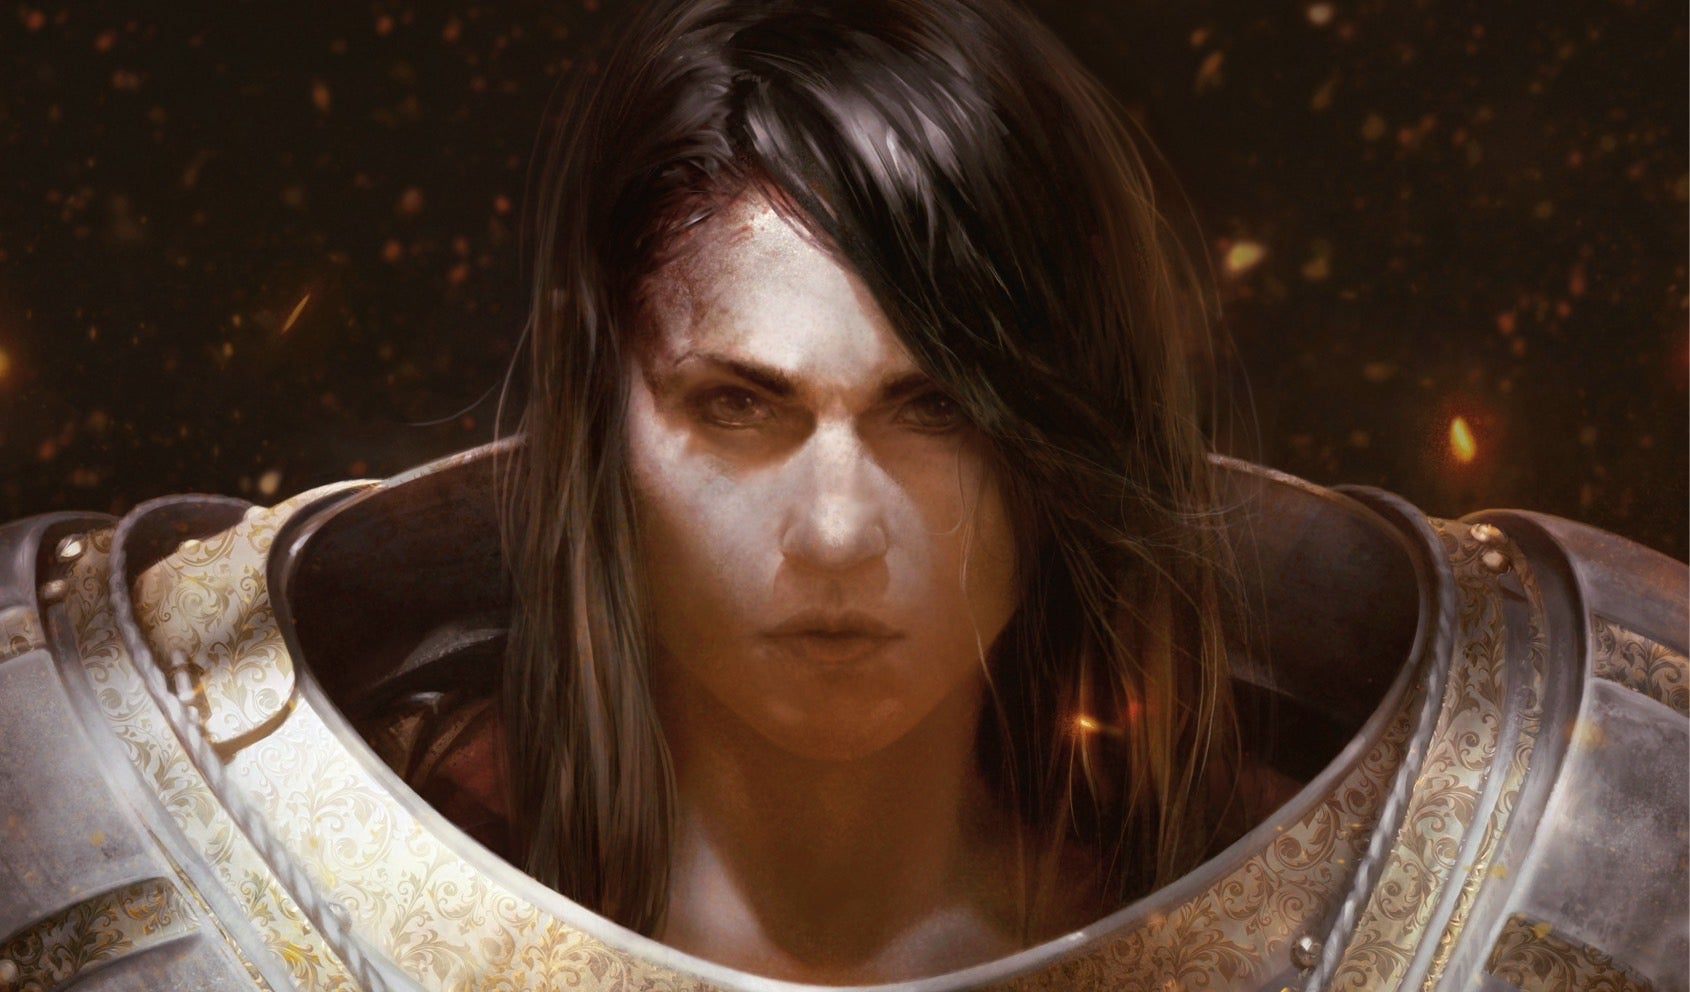 A Girl Dares To Question Wizard-Hating Zealots In The First Chapter Of Myke Cole's Epic Fantasy The Armored Saint